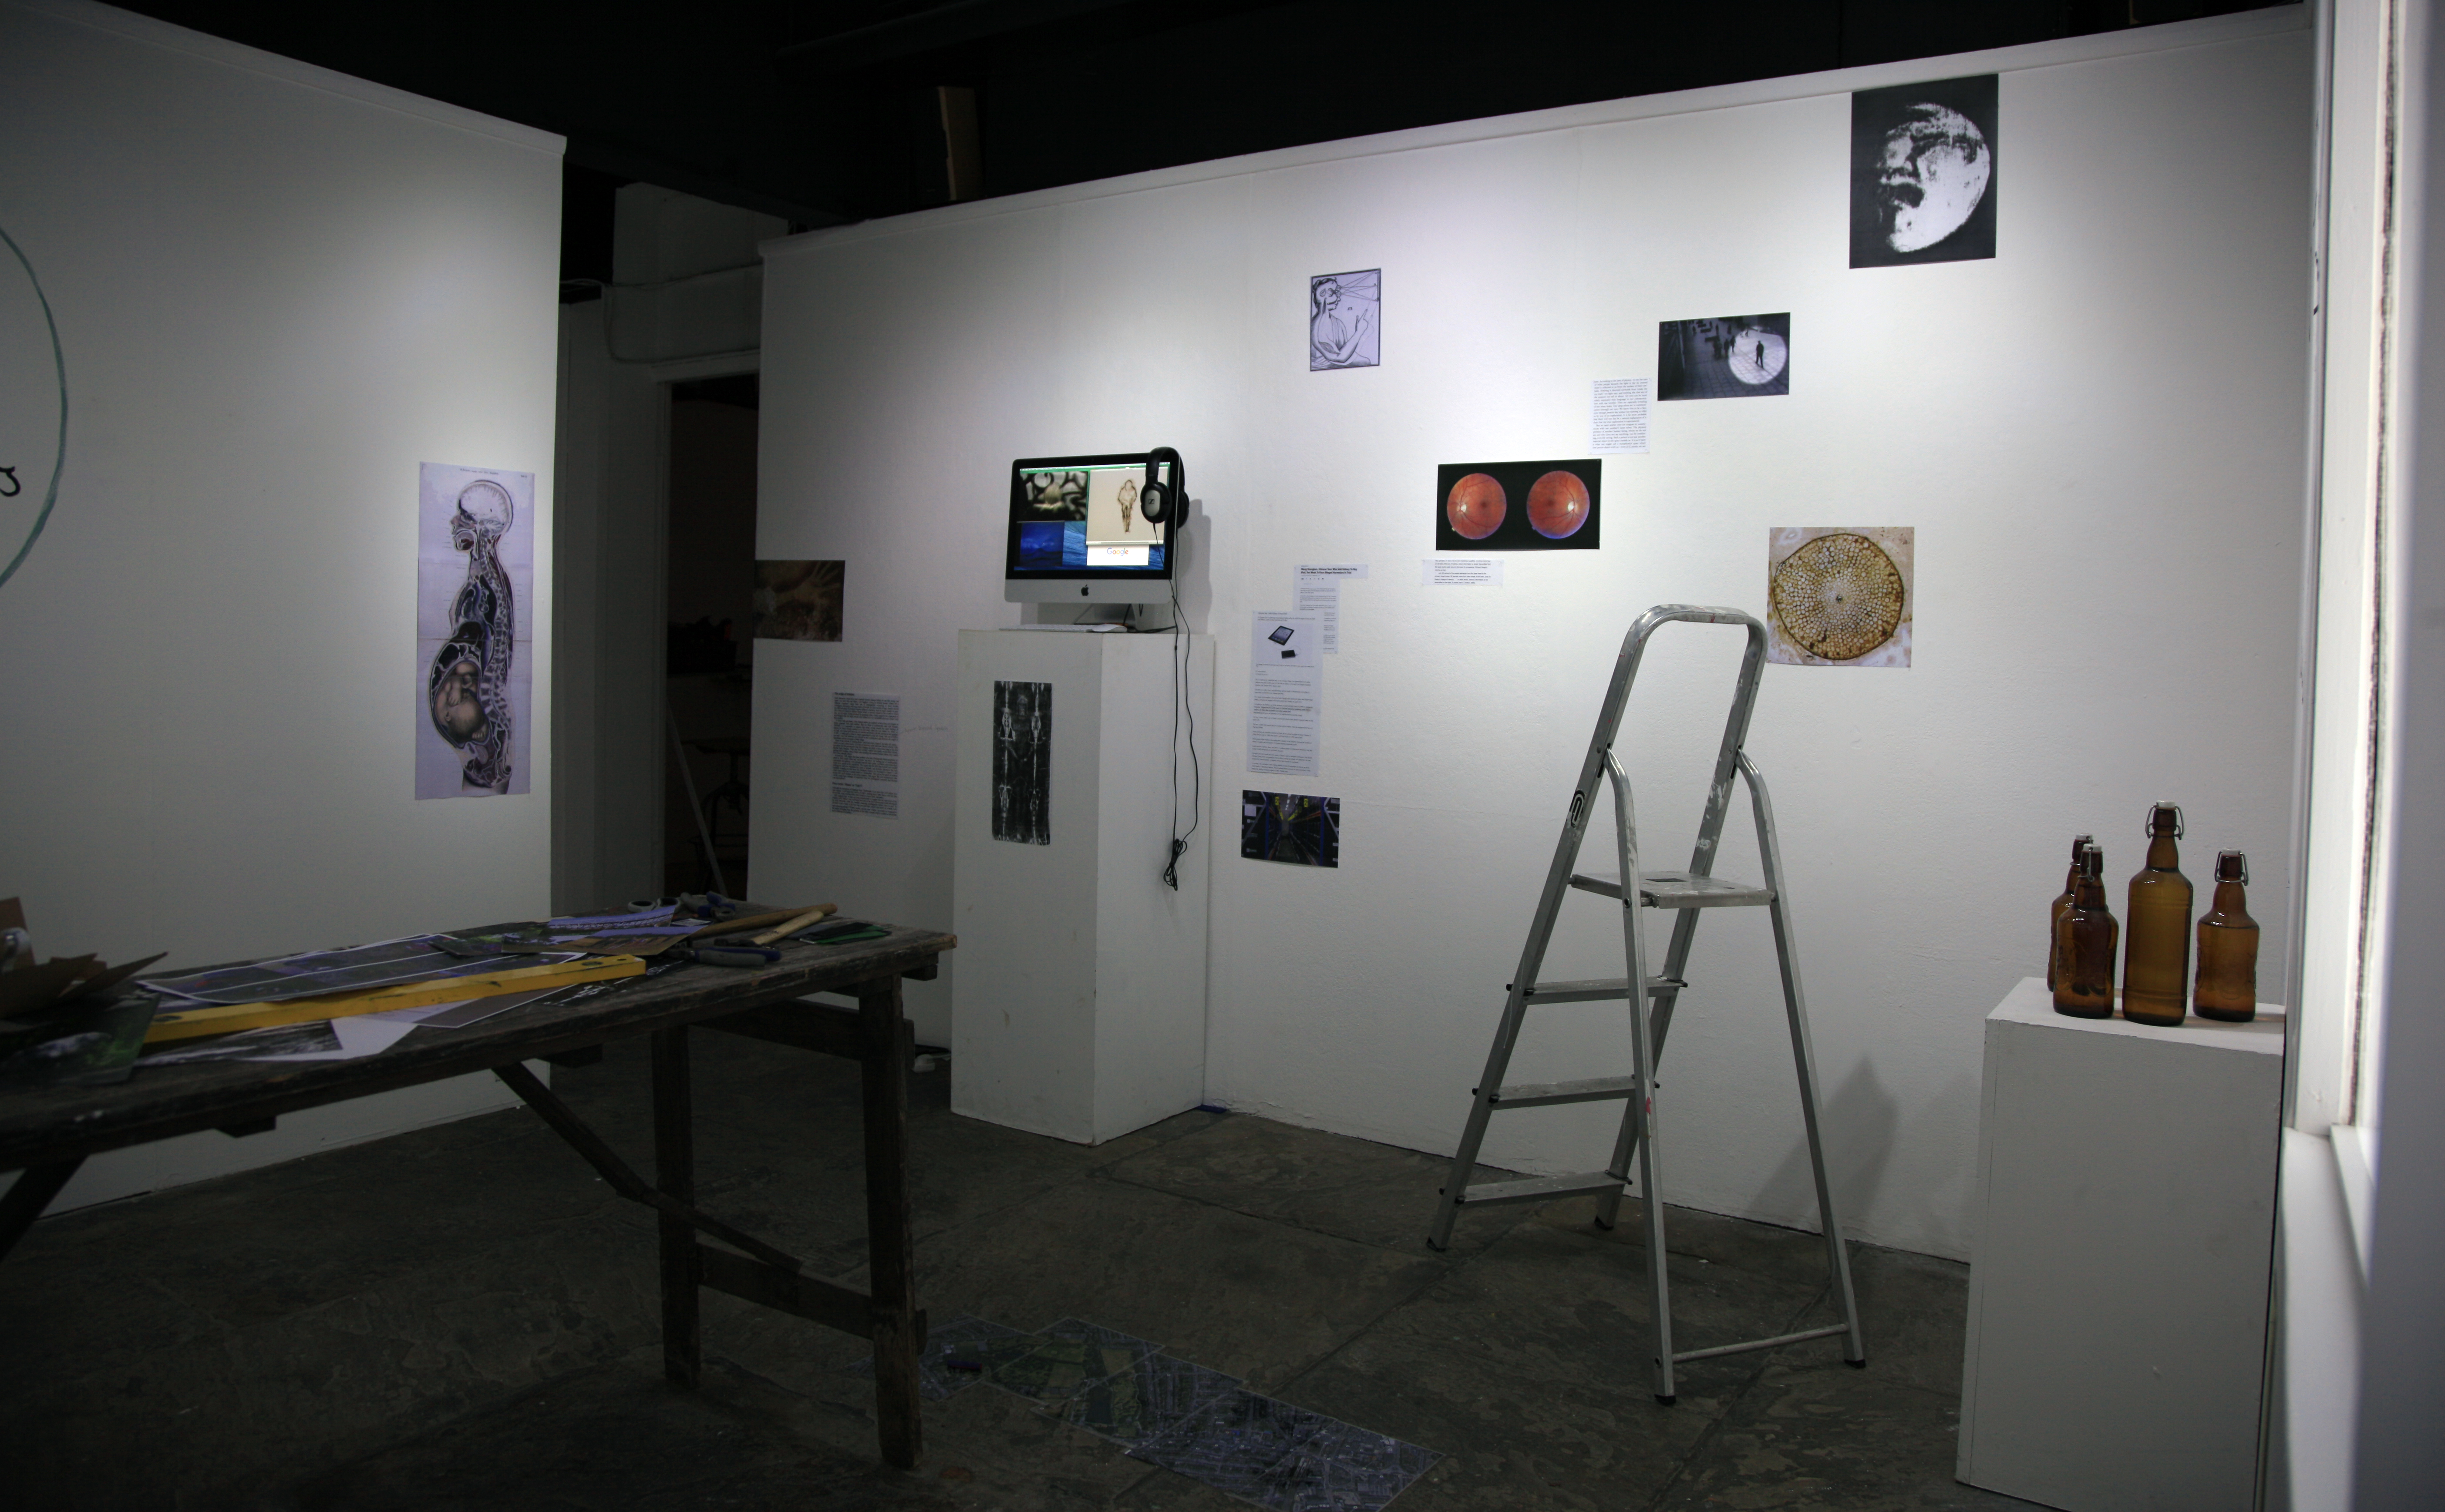 Research installation at Crescent Arts, documentation photograph, 2016